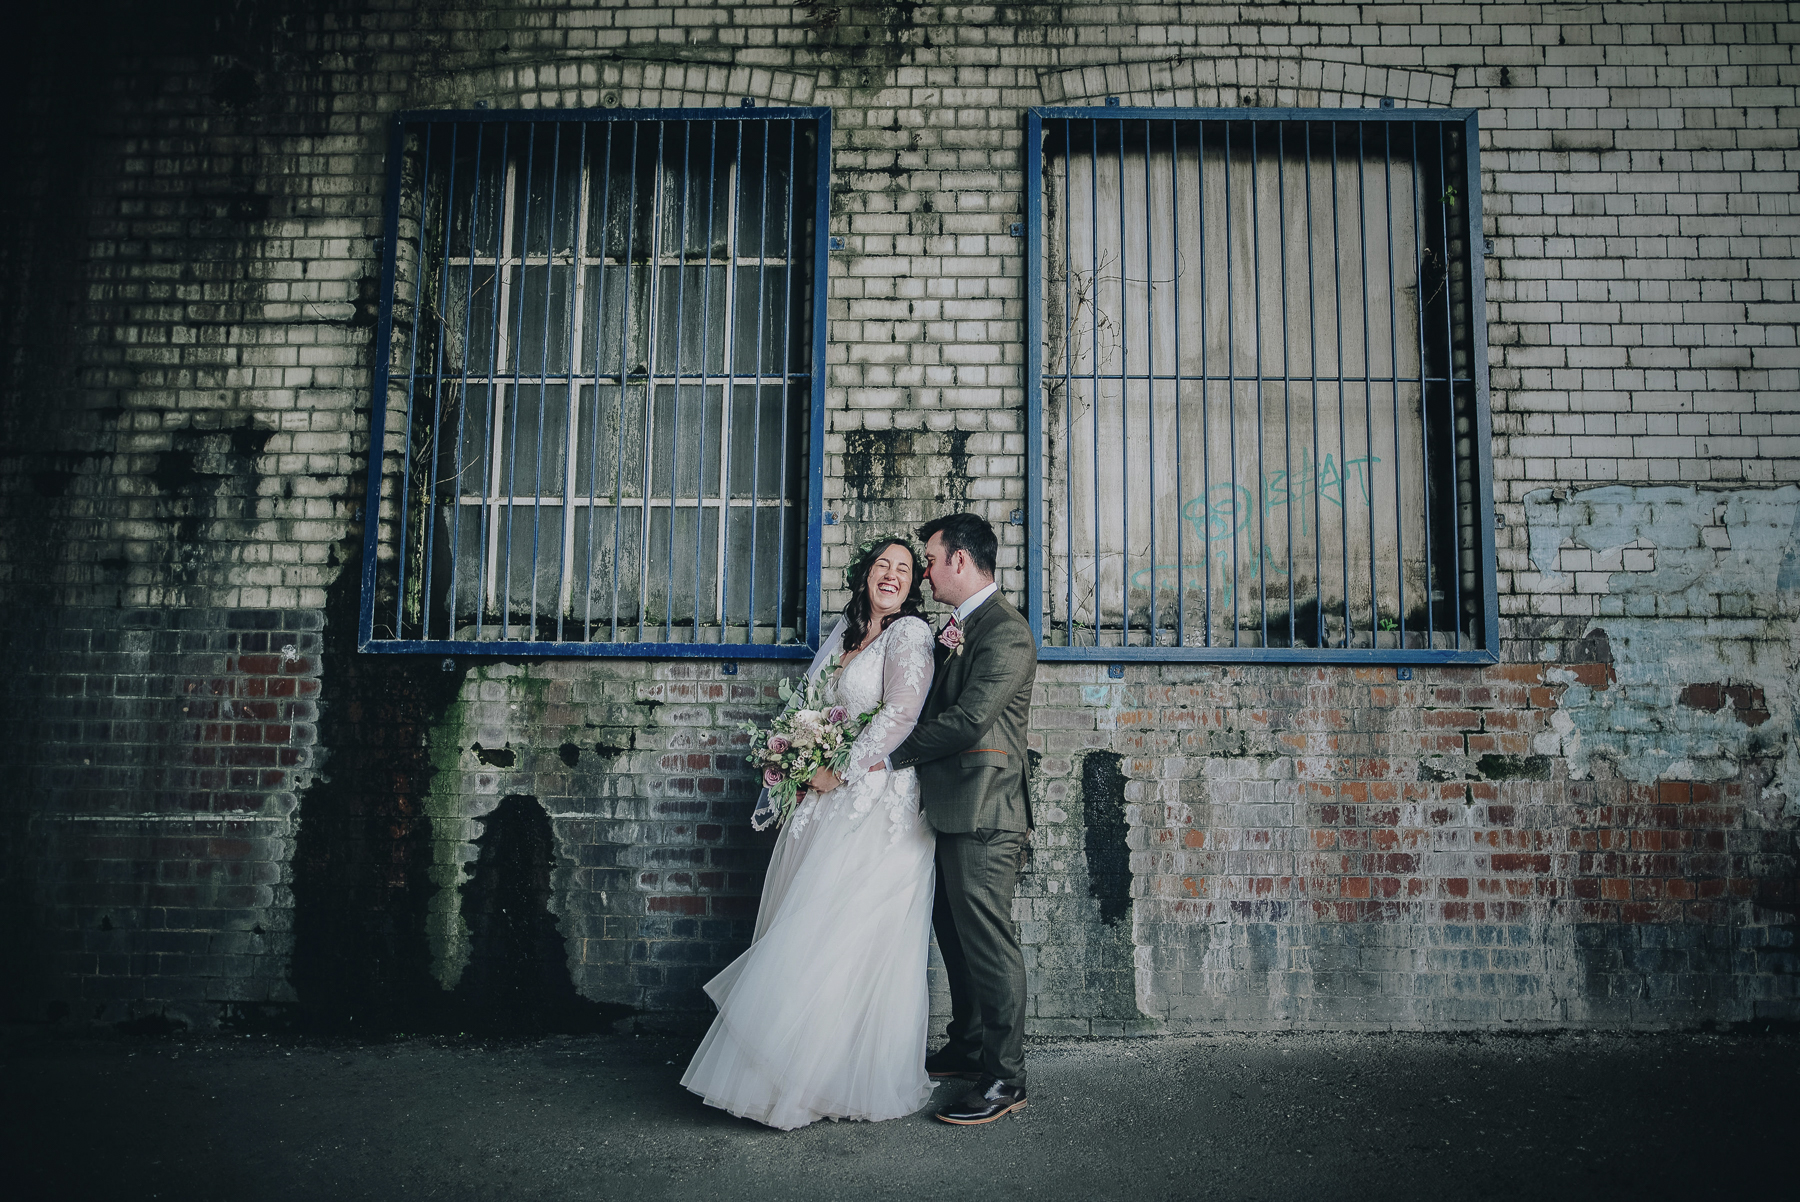 Alternative_Manchester_Wedding_Photography_The_Pin-Up_Bride_Photography-27.jpg